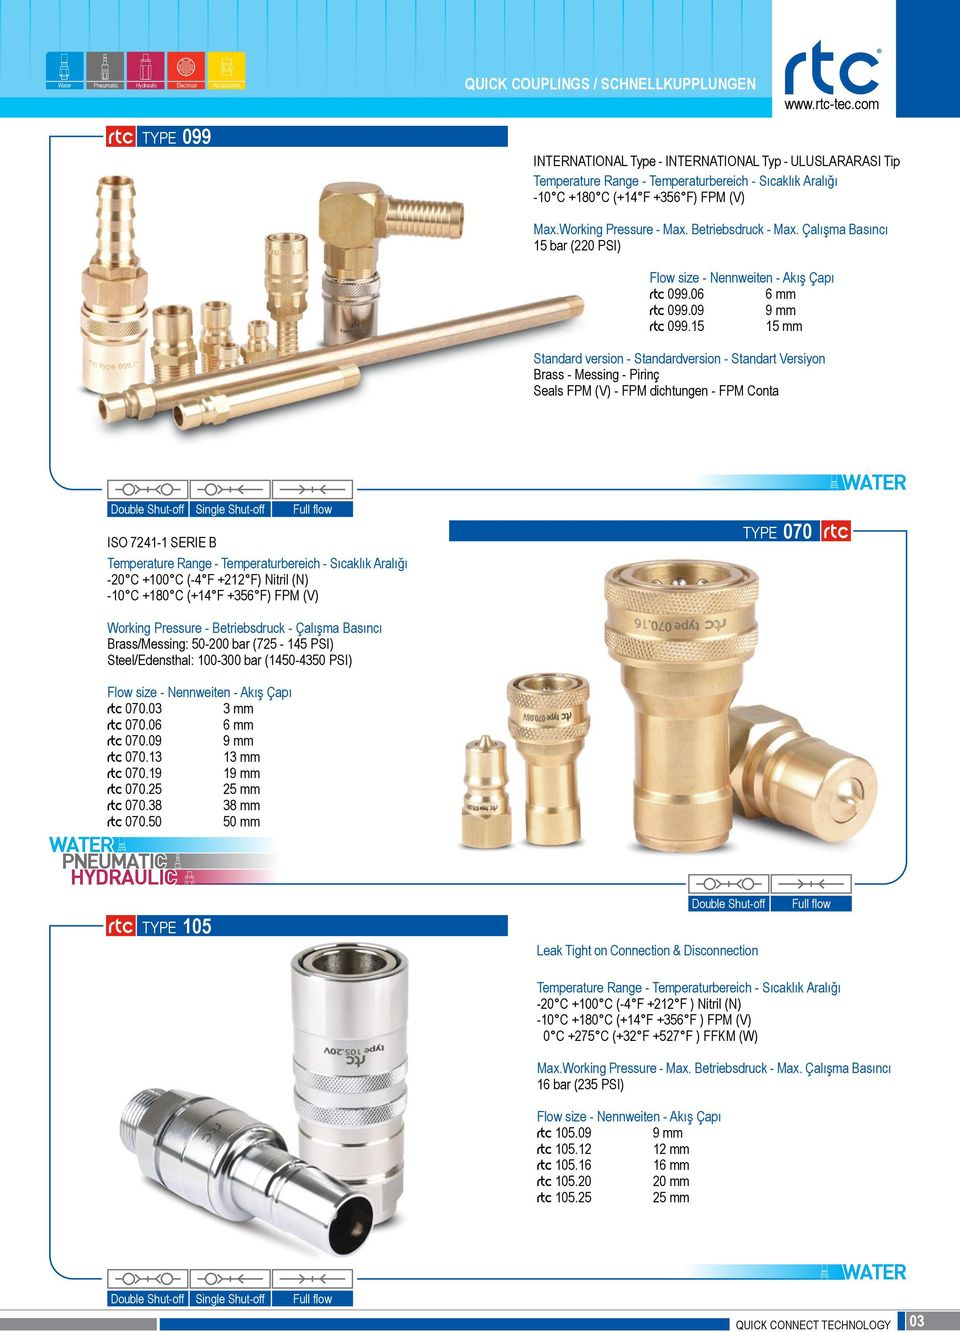 15 15 mm Standard version - Standardversion - Standart Versiyon Brass - Messing - Pirinç Seals FPM (V) - FPM dichtungen - FPM Conta Single Shut-off Full flow ISO 7241-1 SERIE B -20 C +100 C (-4 F